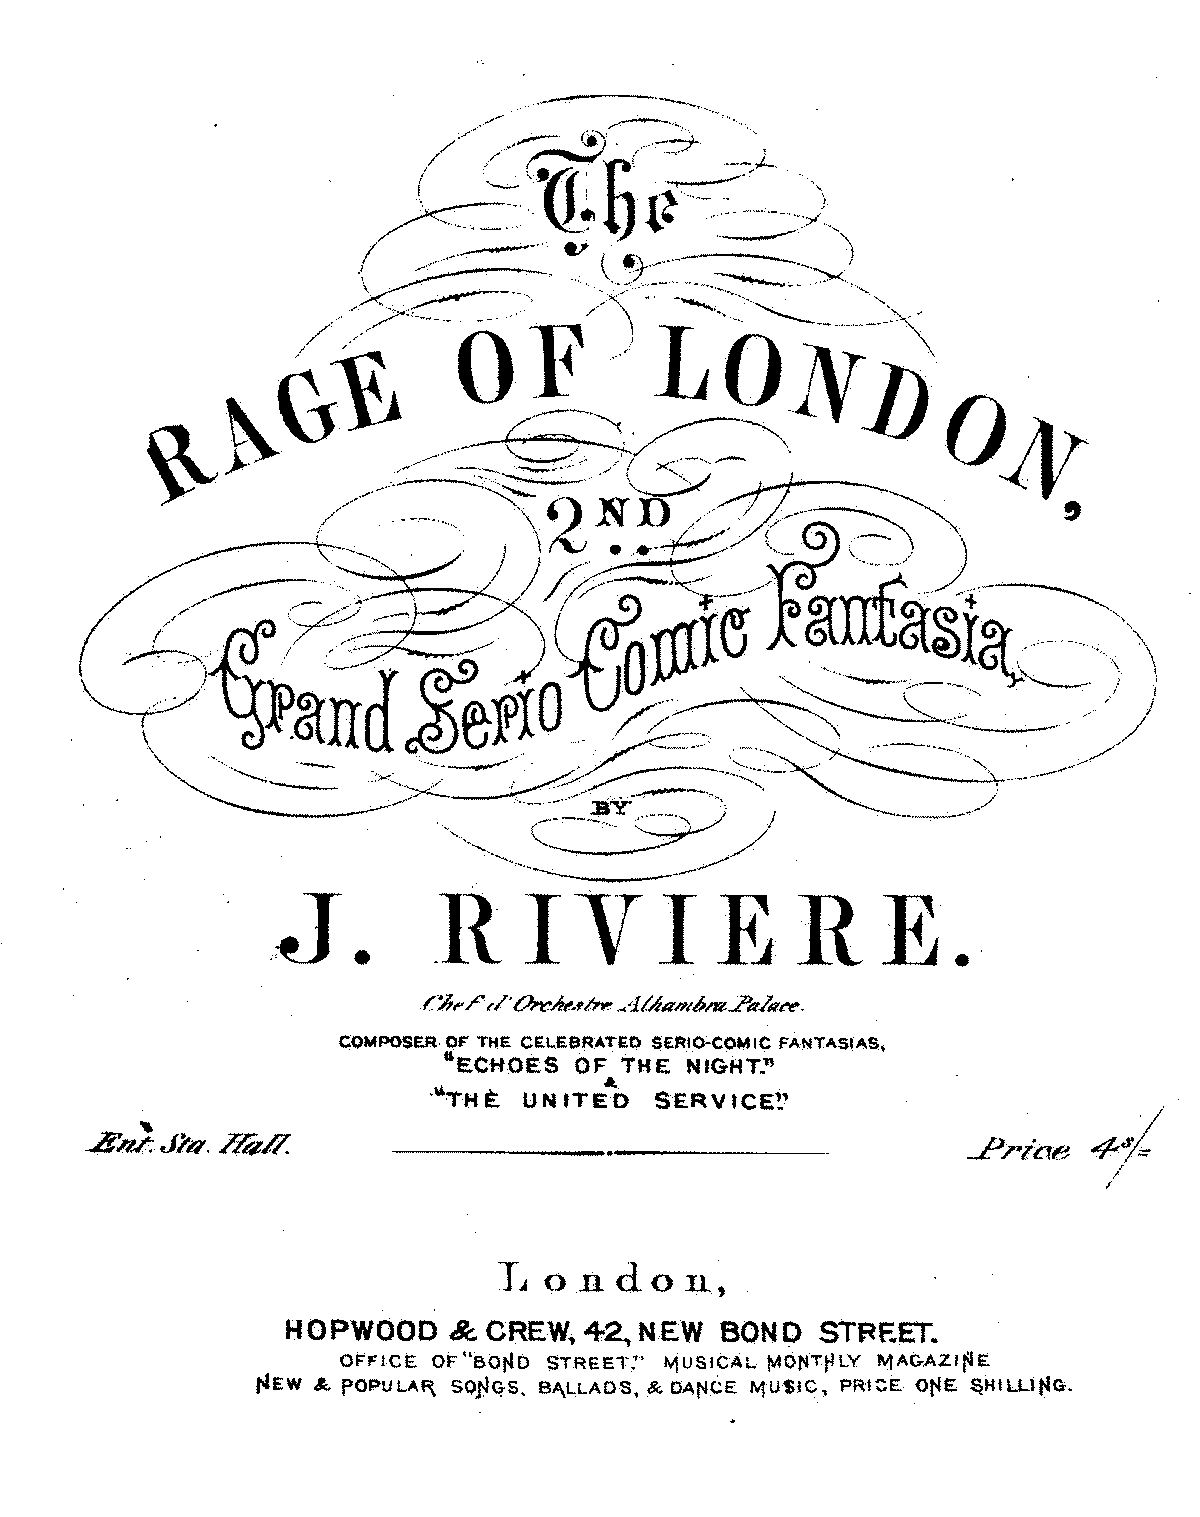 PMLP264369-RIVIERE Rage of London - 2nd Grand Serio-Comic Fantasia - piano solo.pdf